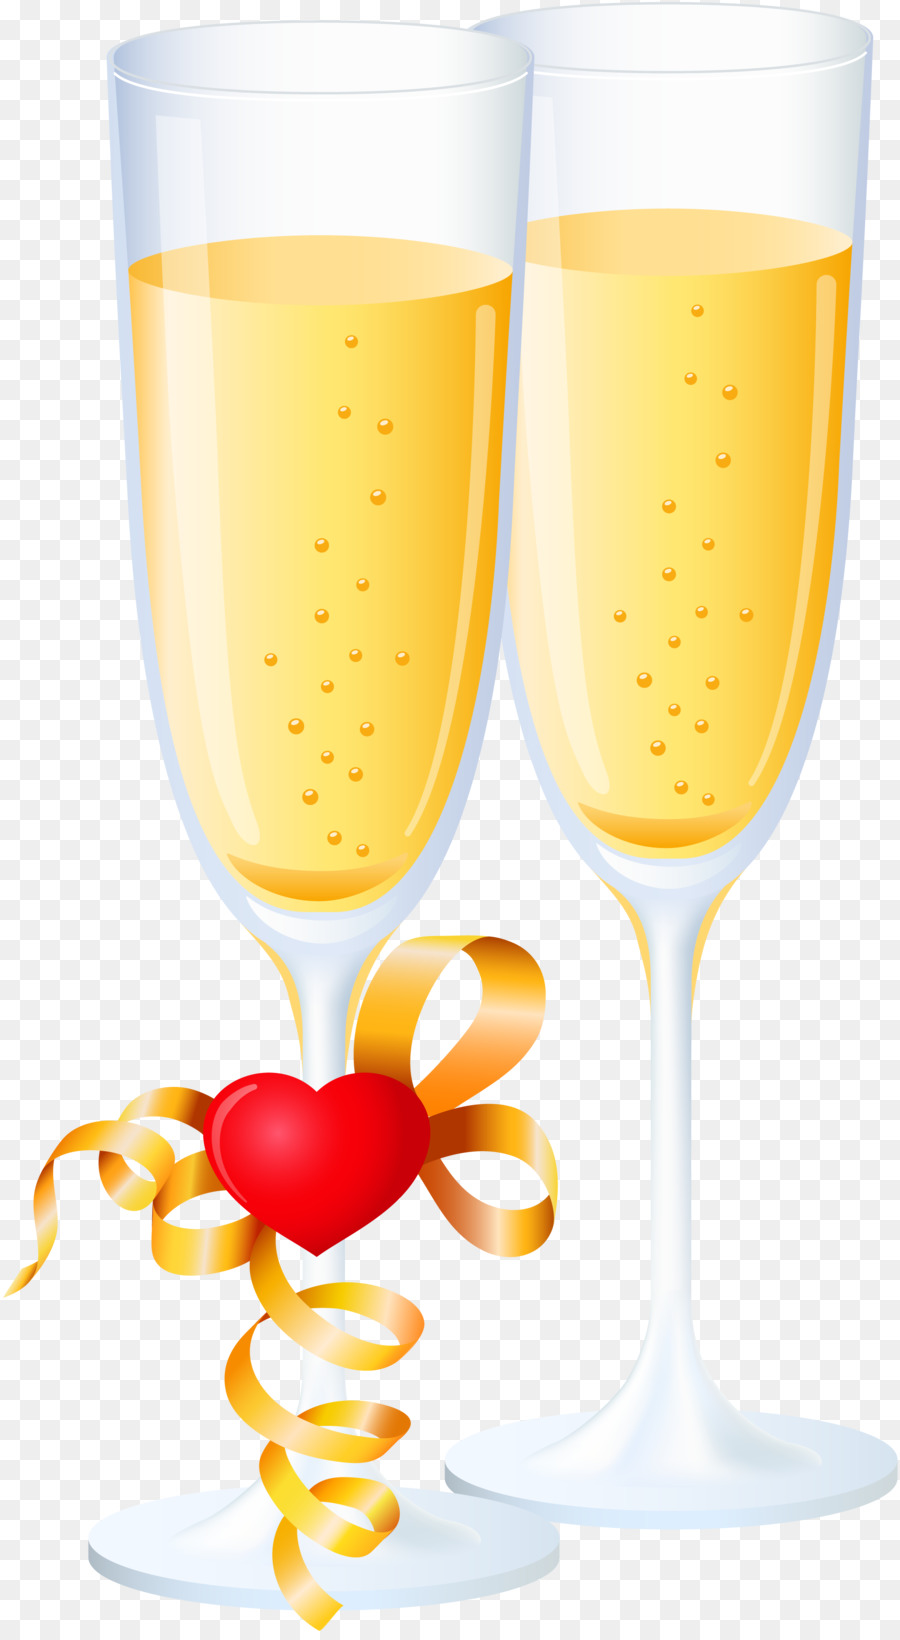 Champaign clipart mimosa glass. Champagne cocktail wine png